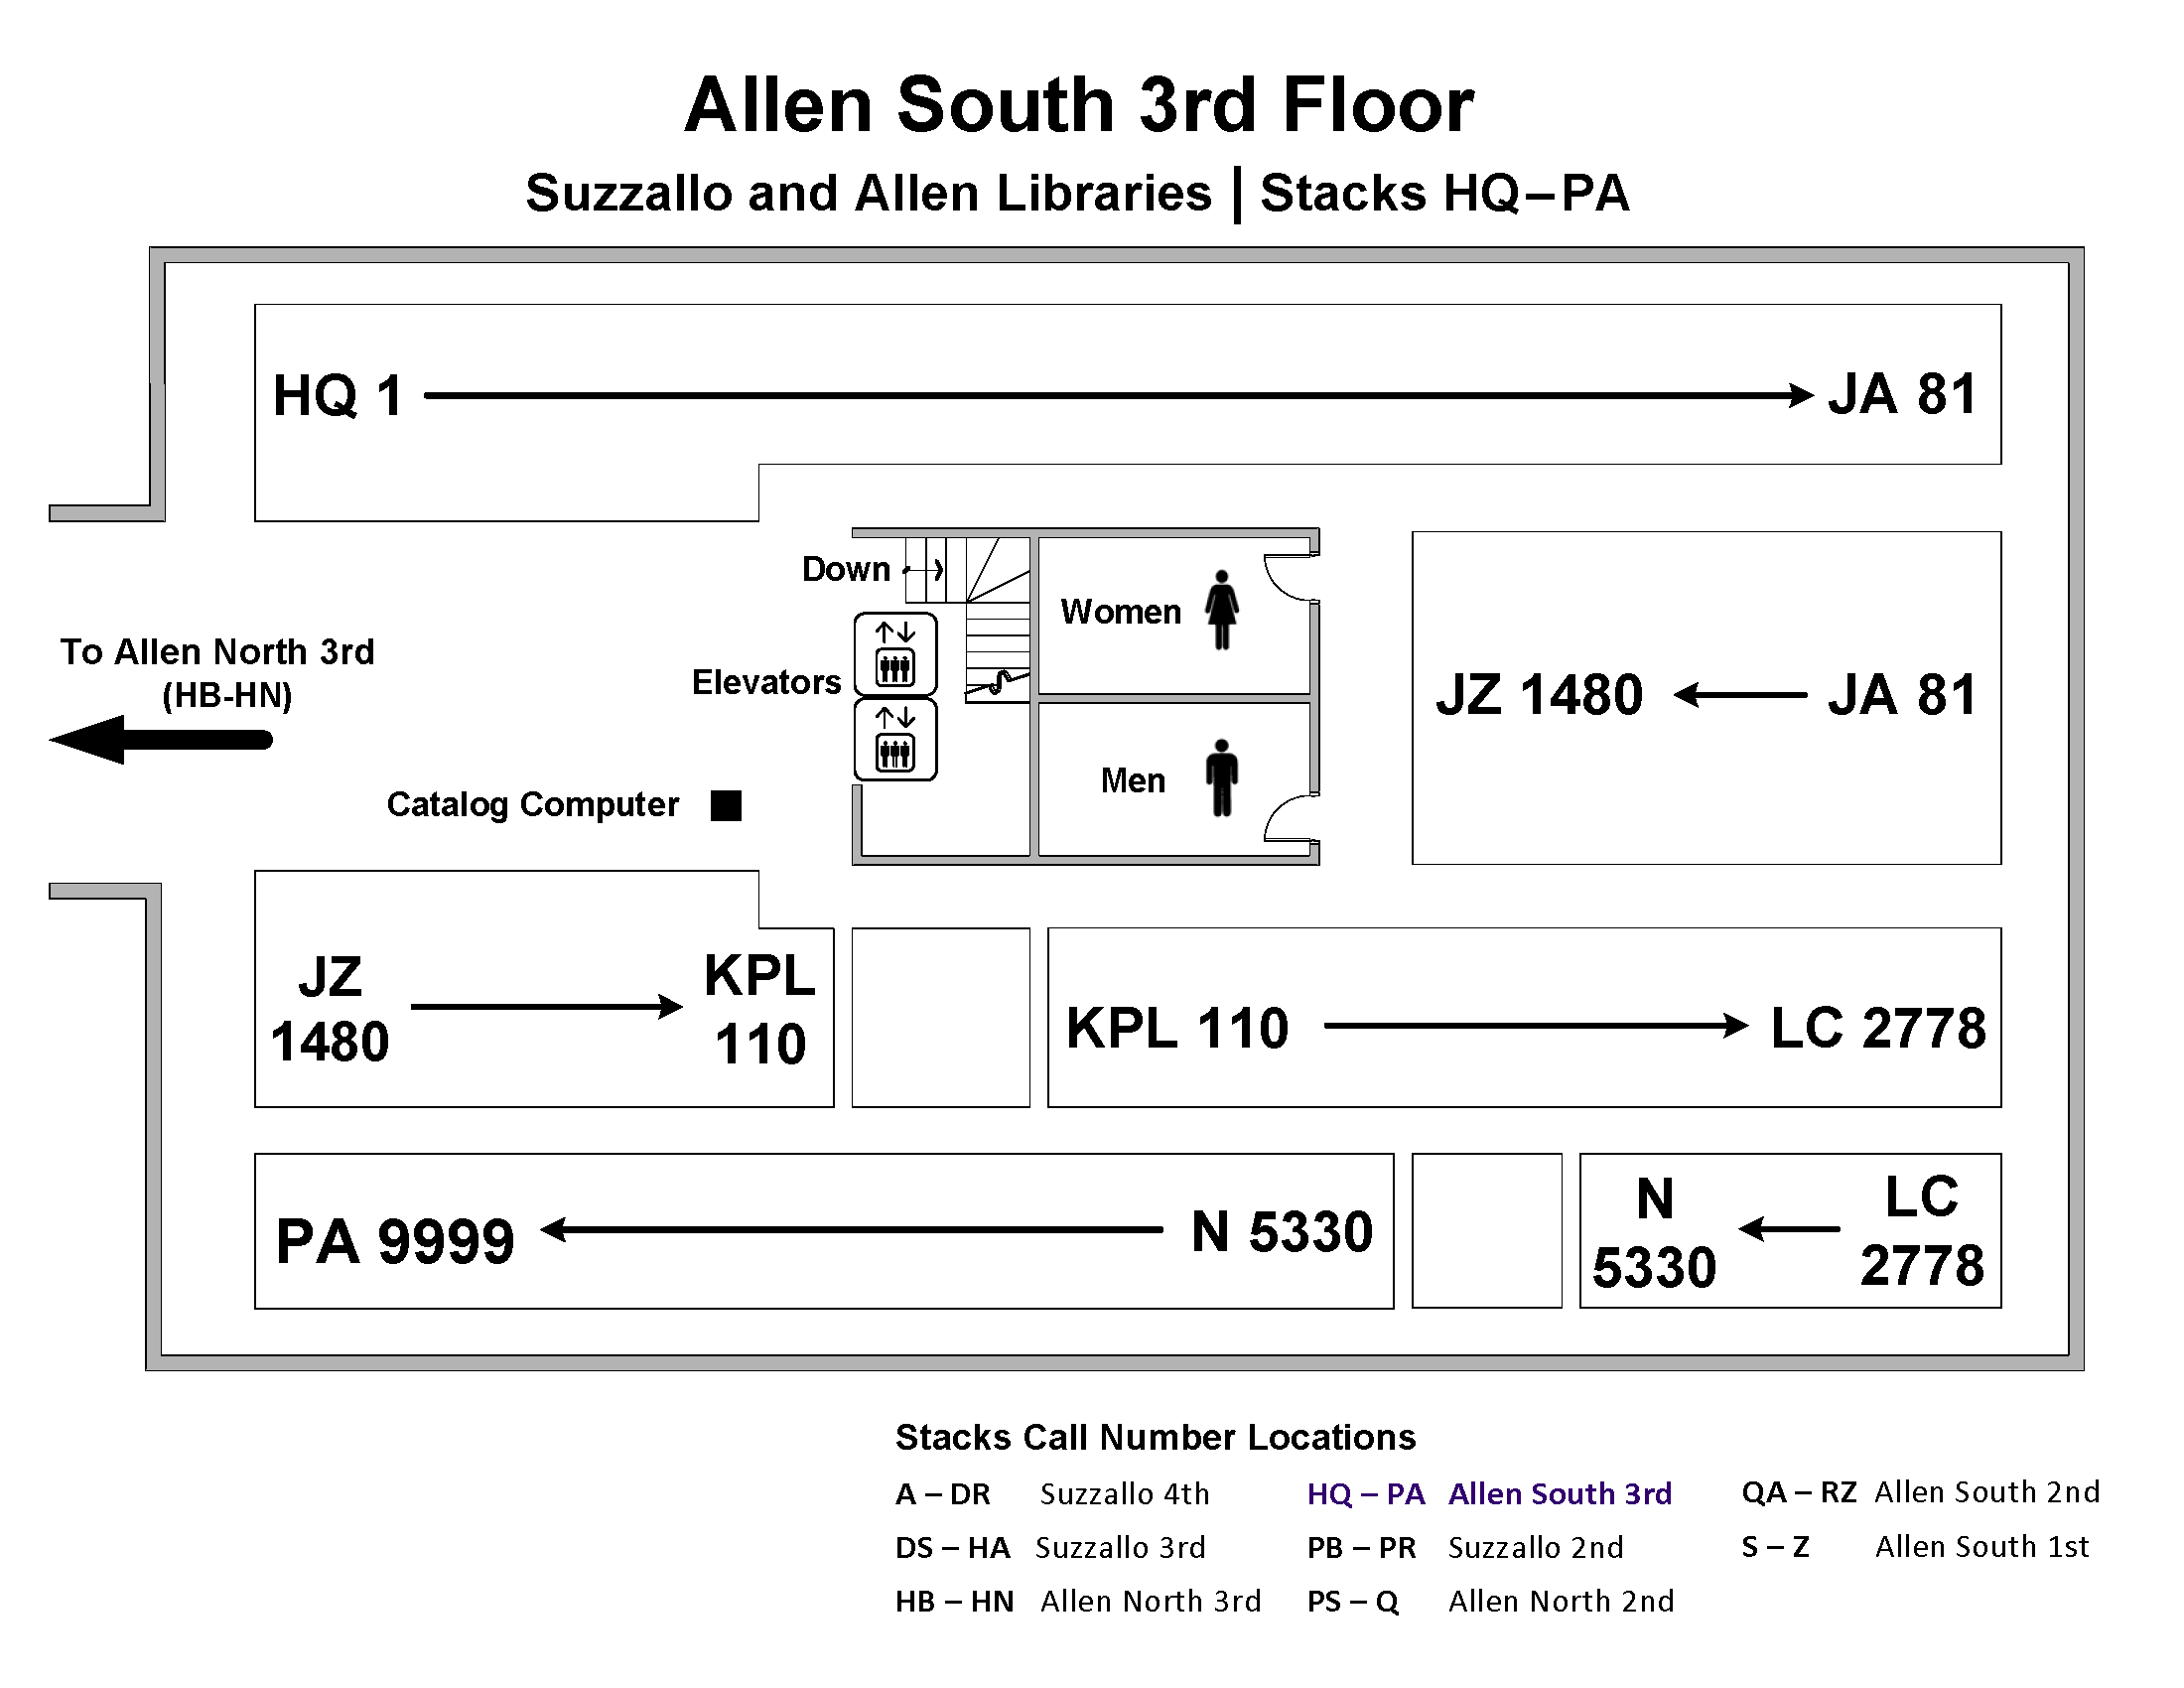 Call Number Map - Allen S 3rd